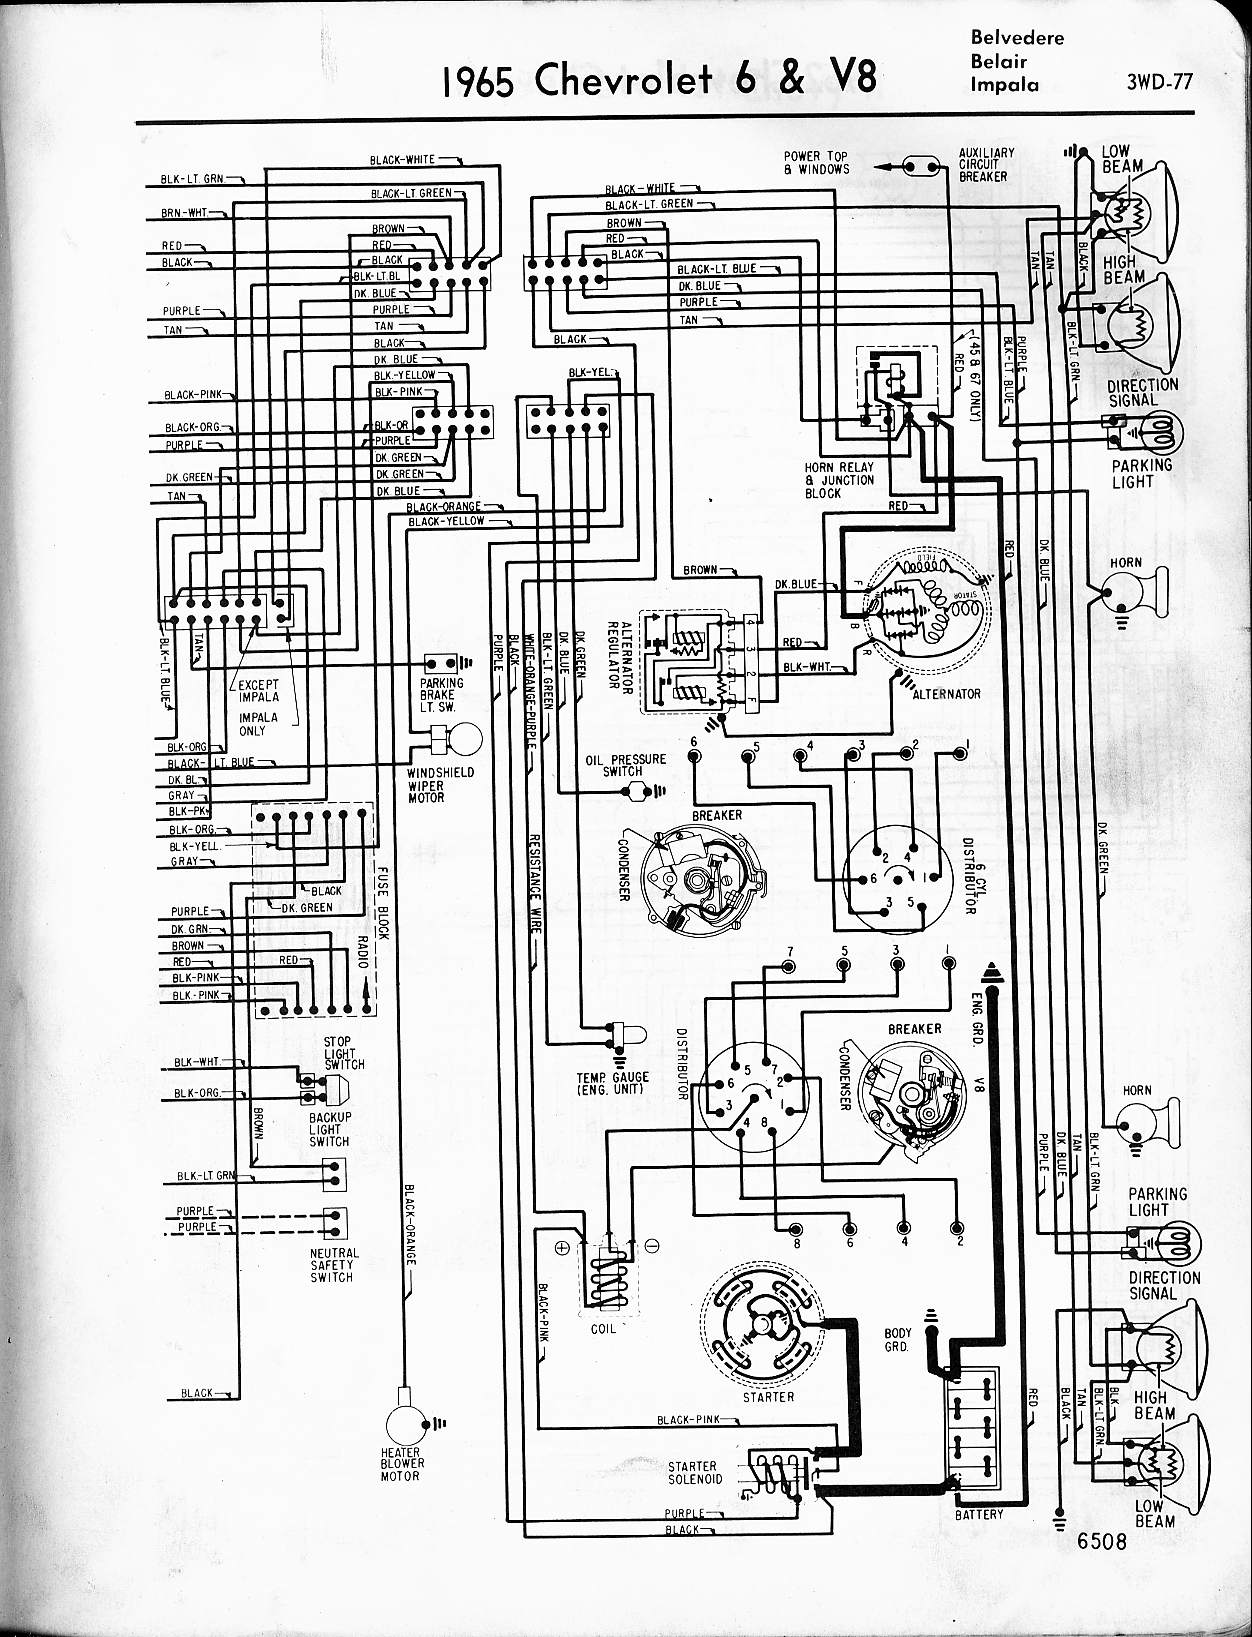 1965 Chevy Truck Fuse Box Reinvent Your Wiring Diagram Dodge Dart Online Schematics Rh Delvato Co 1986 1977